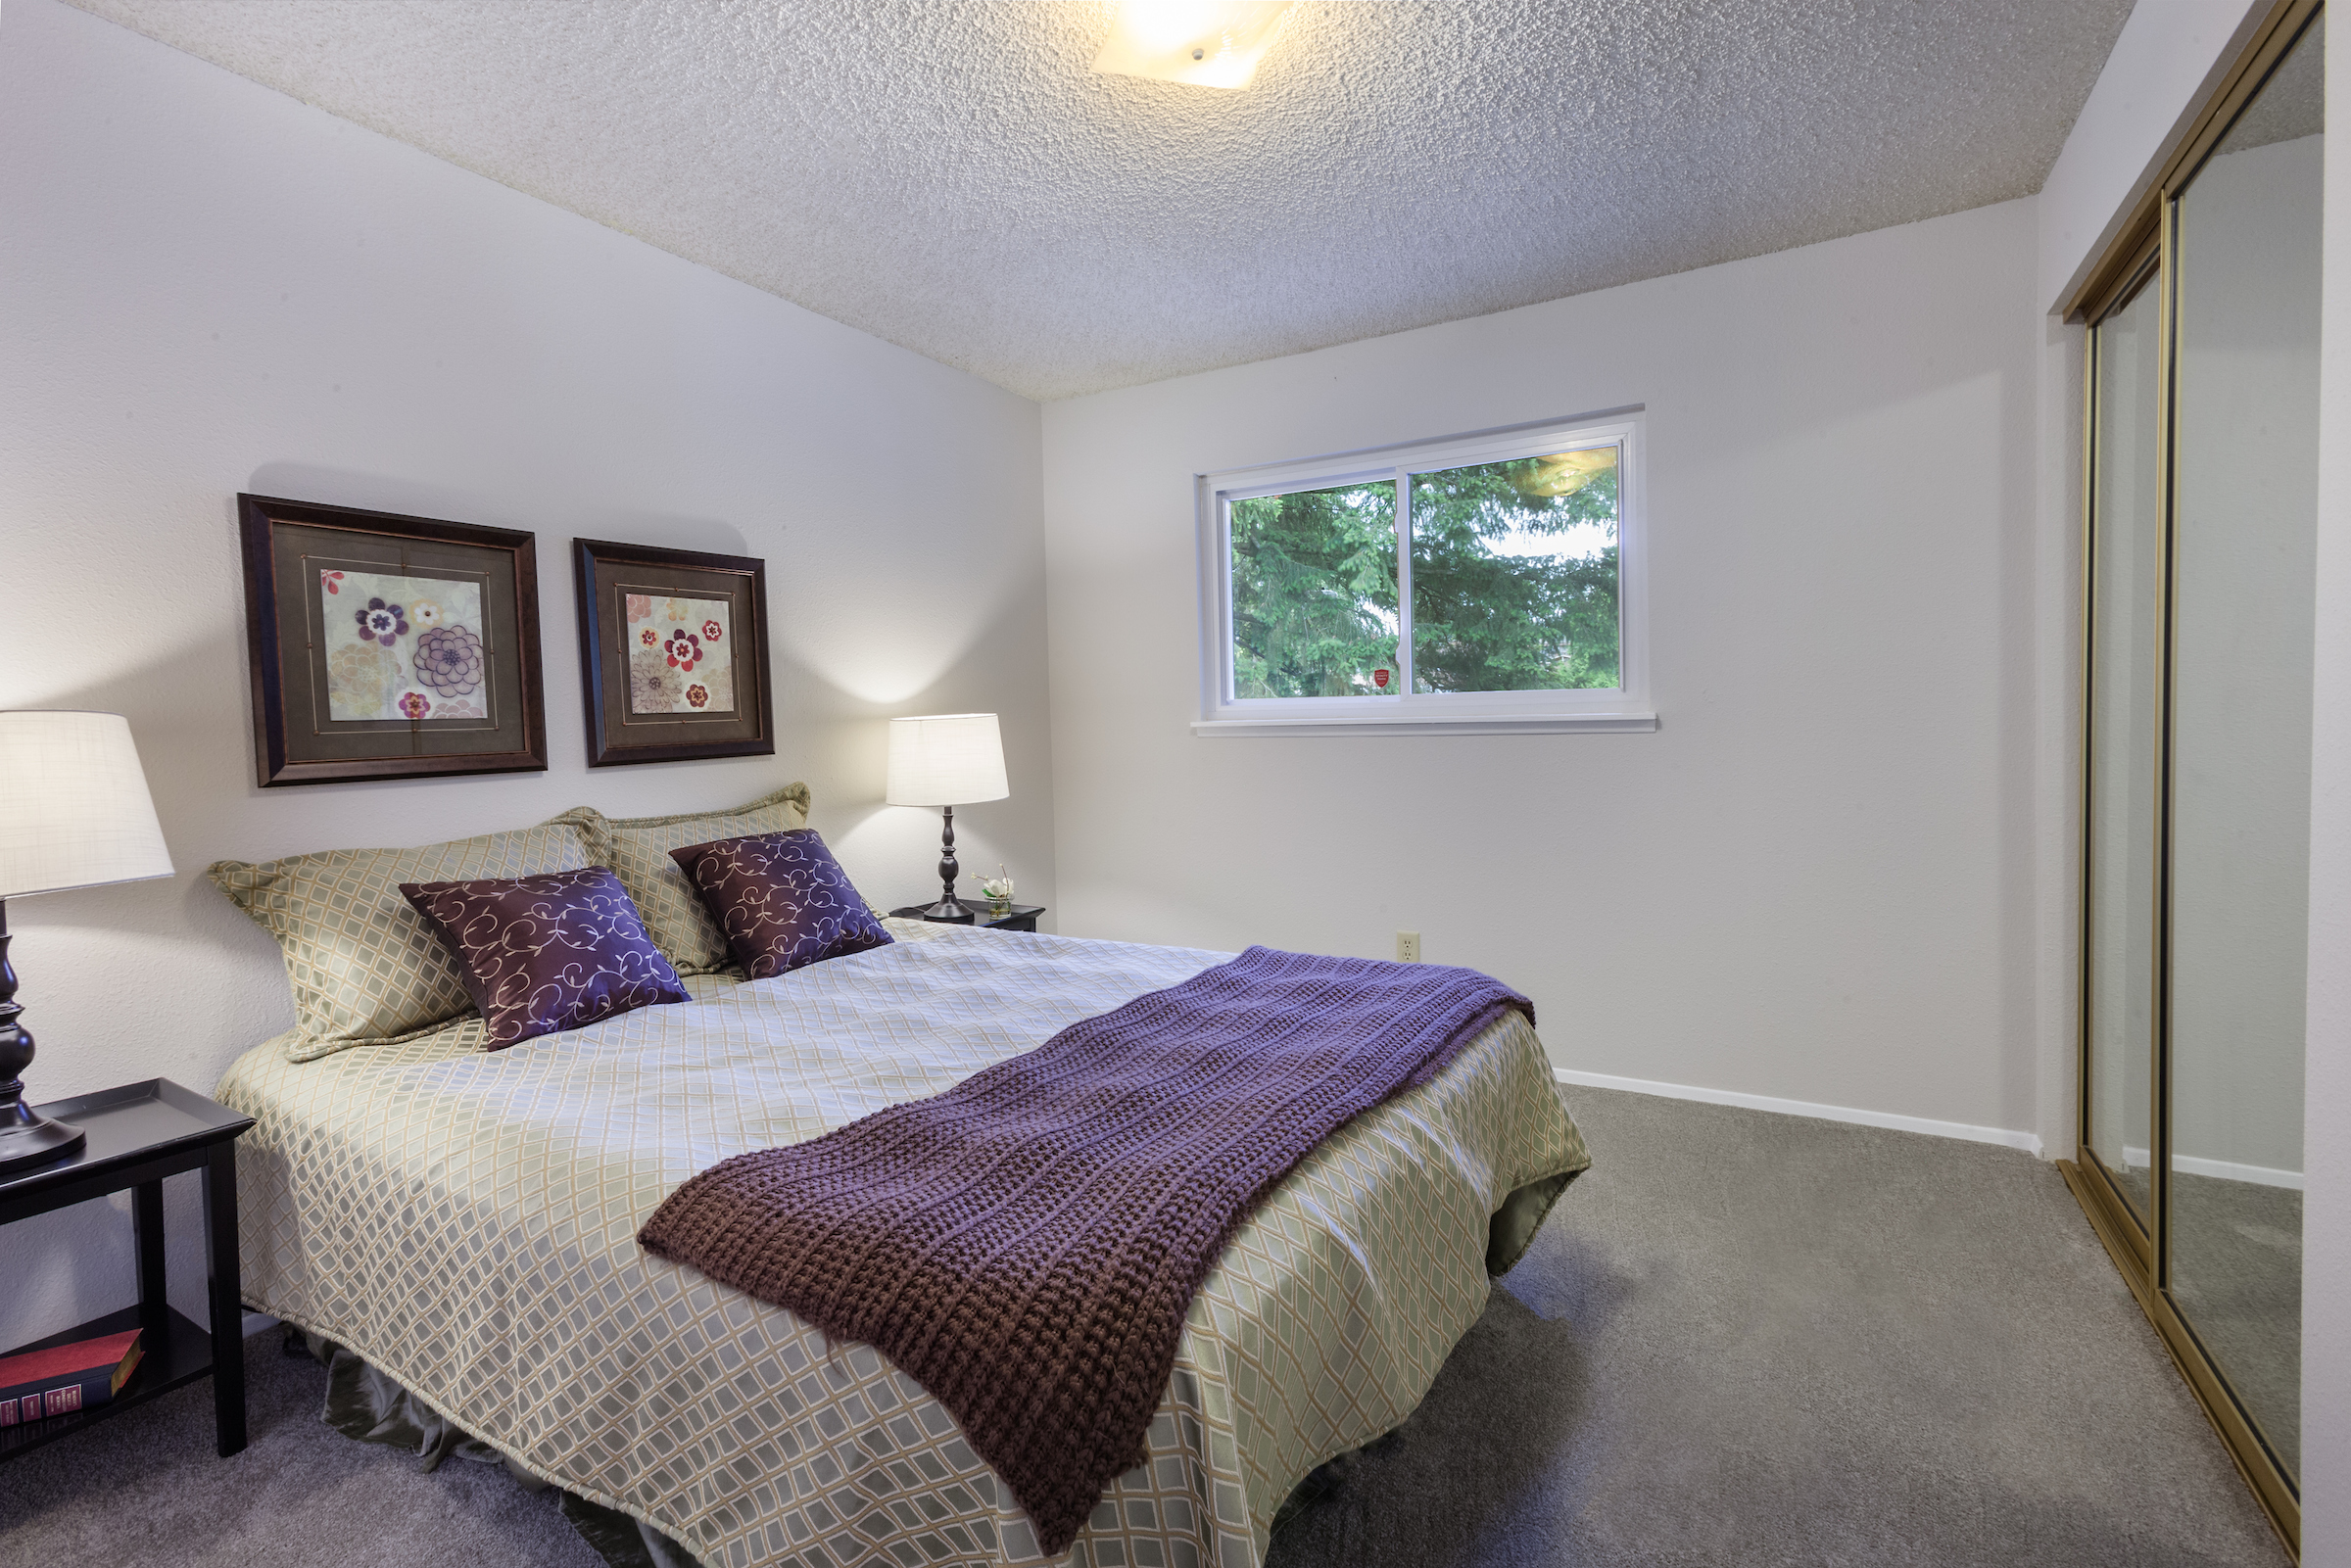 Bedroom- Renton, Washington, USA